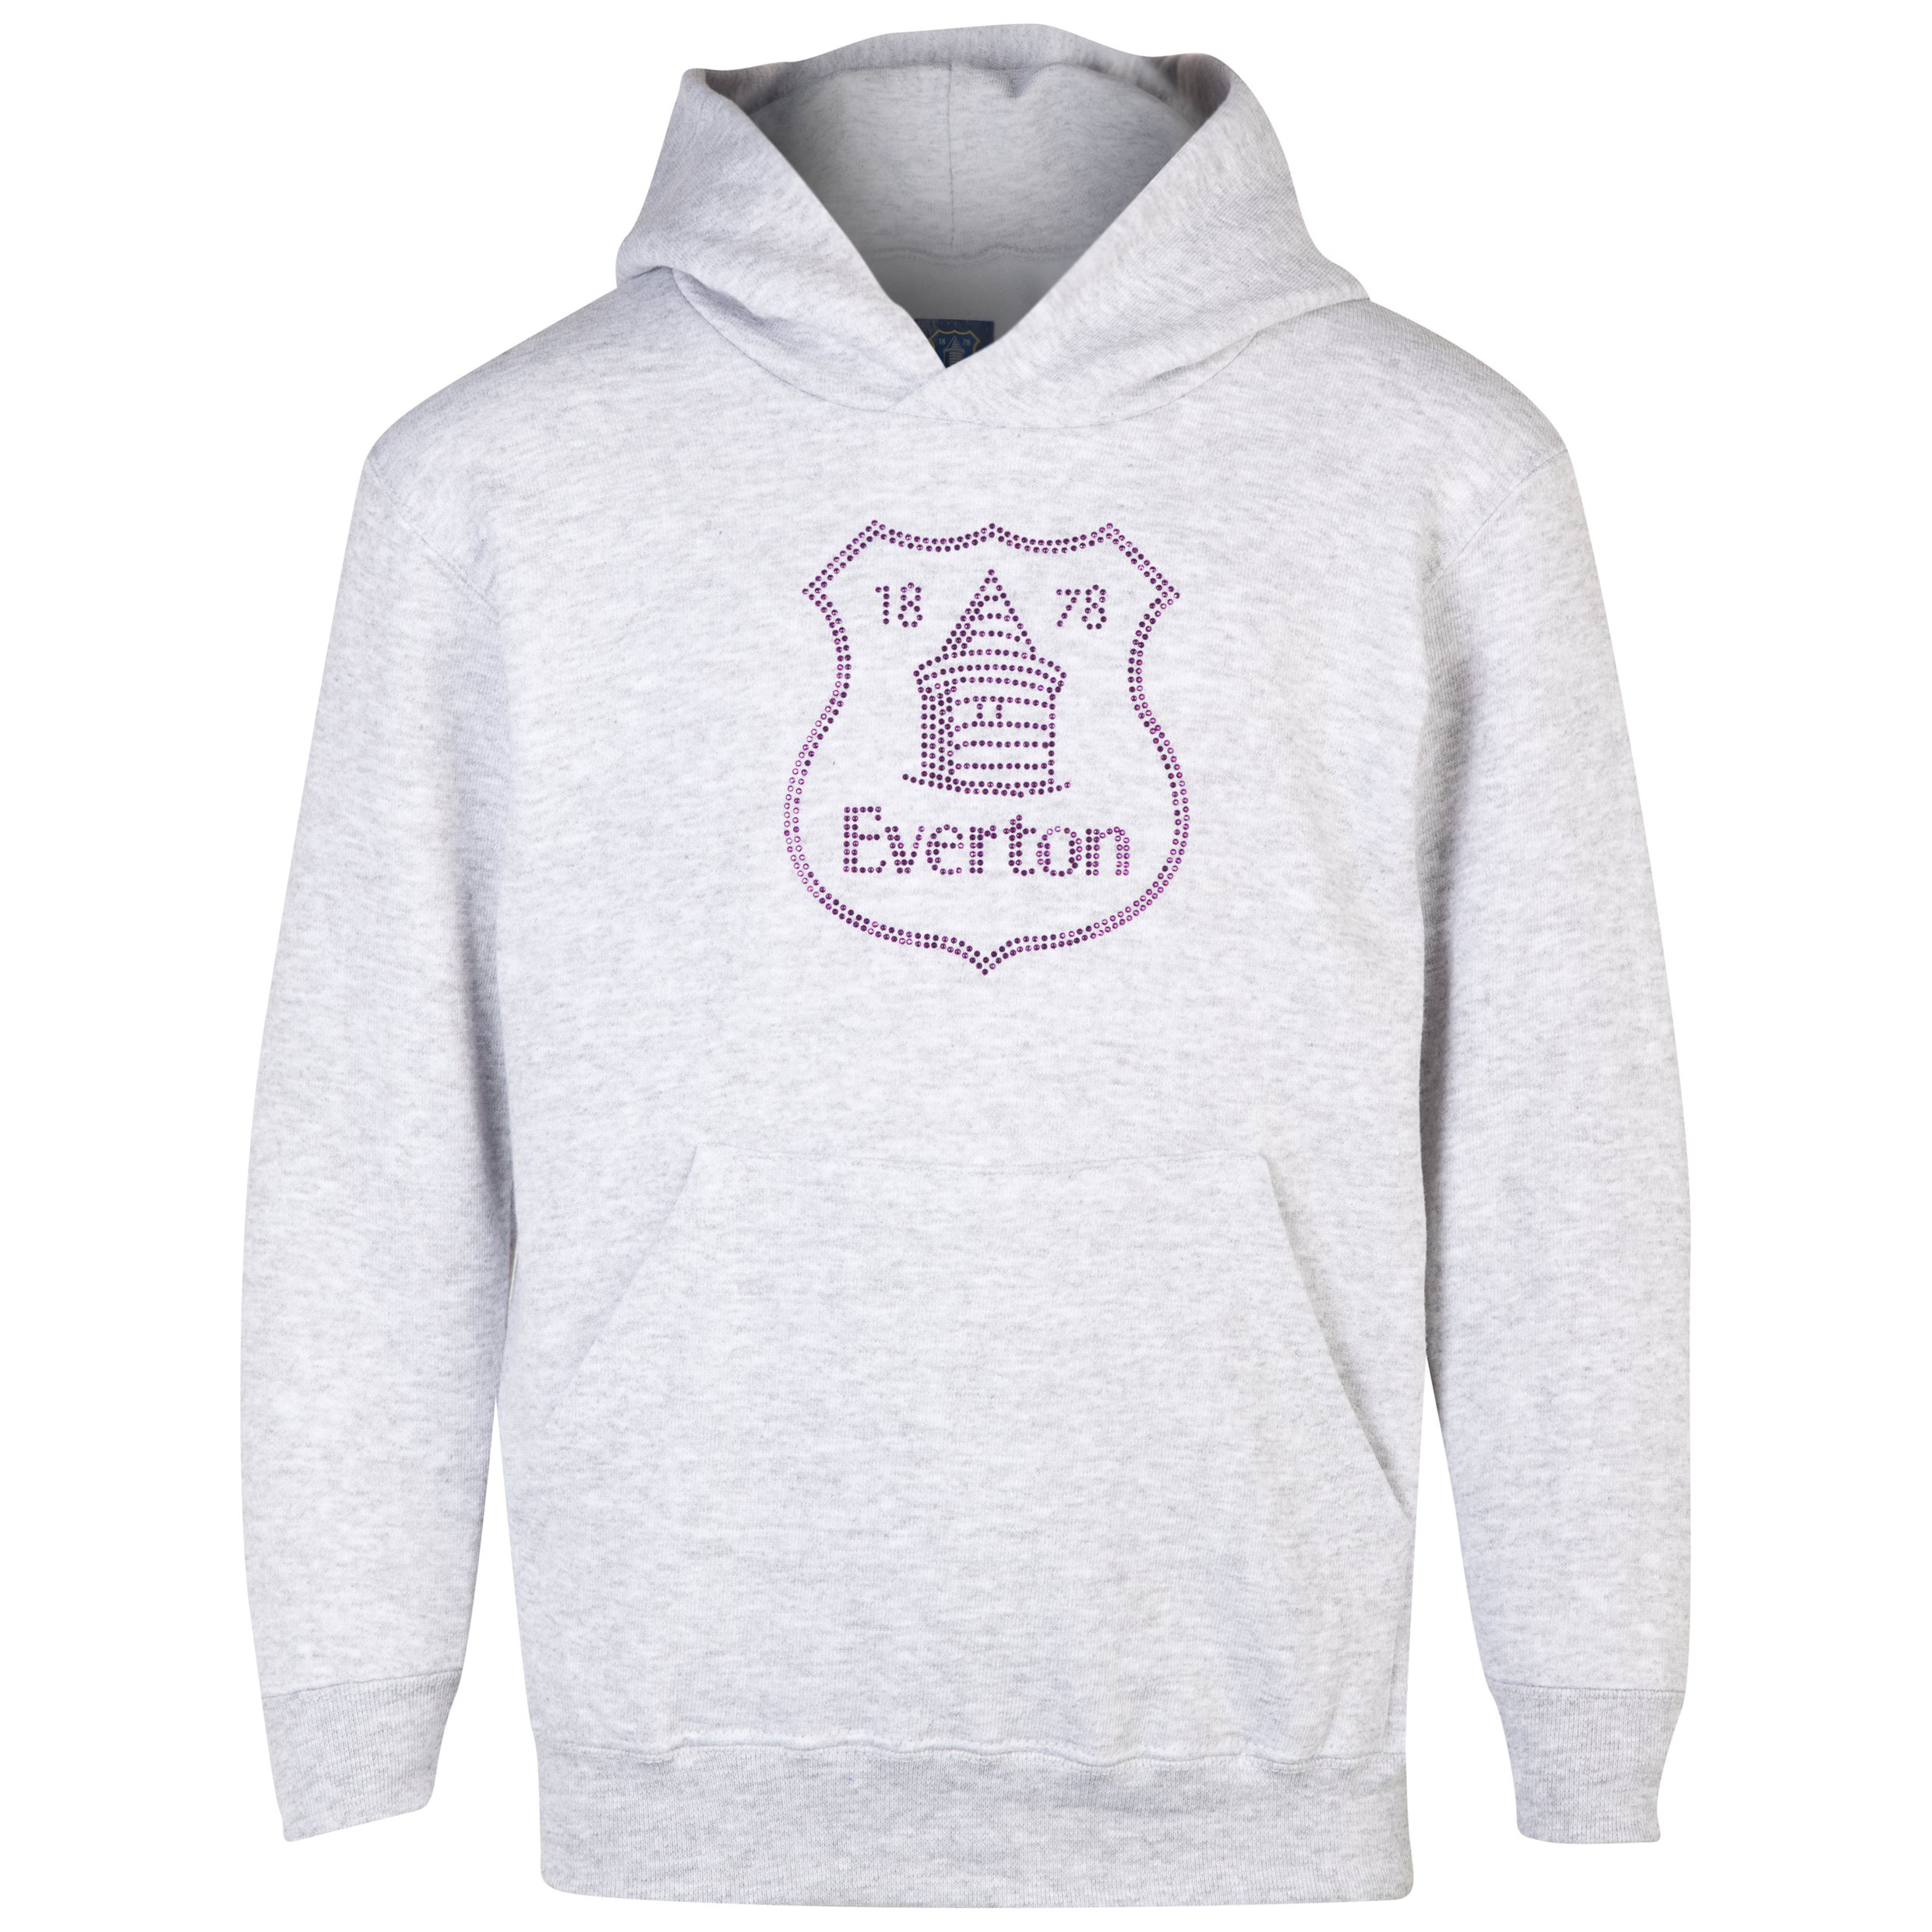 Everton Rhinestone Hoodie - Girls Grey